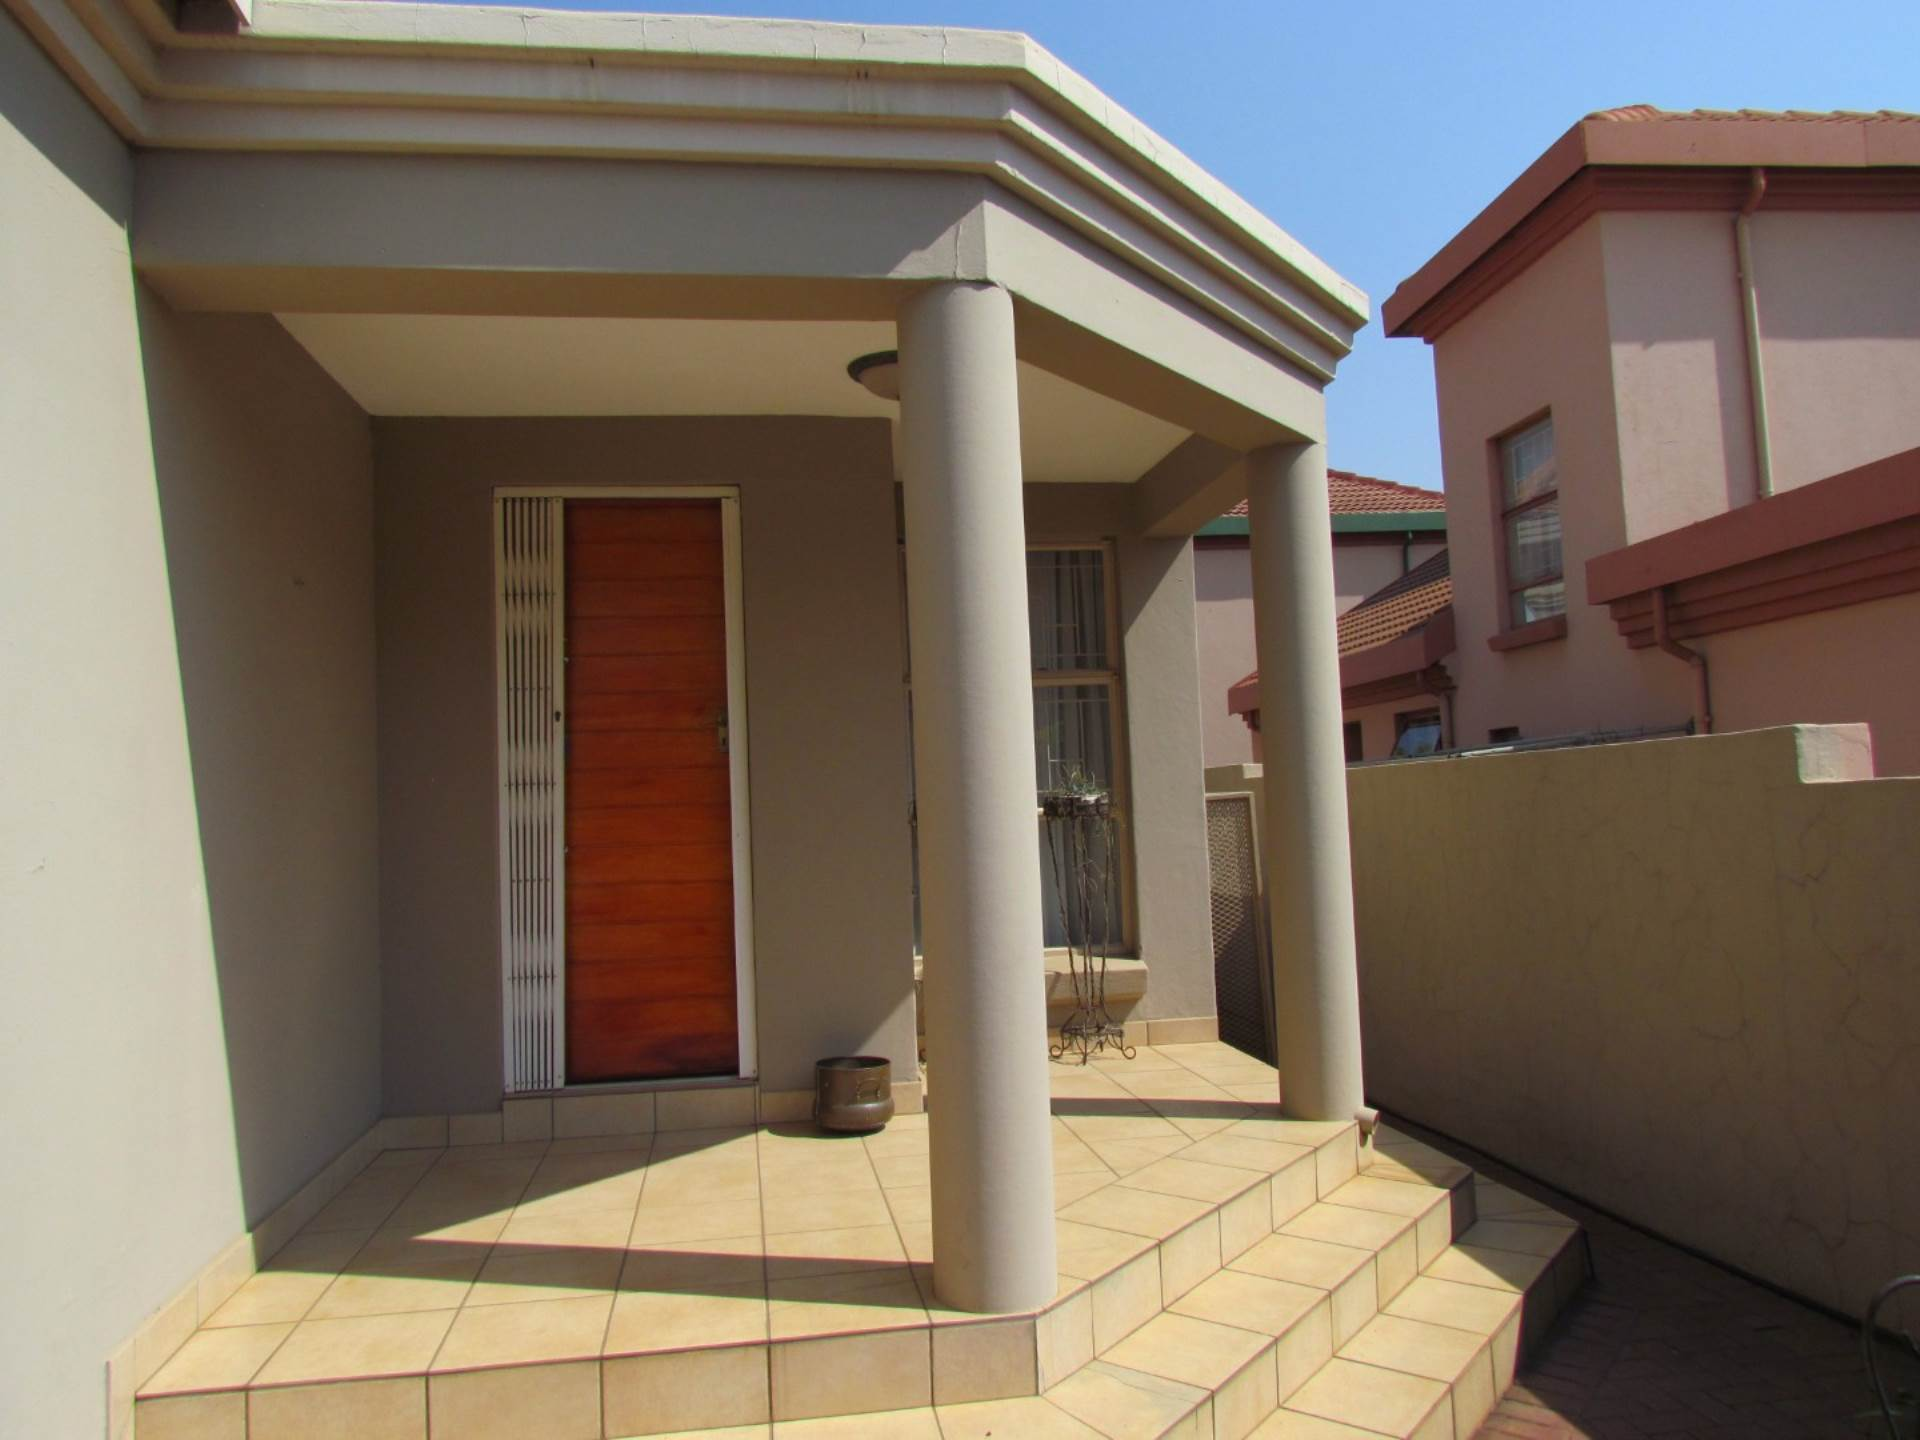 Rietvalleirand And Ext property for sale. Ref No: 13534328. Picture no 32